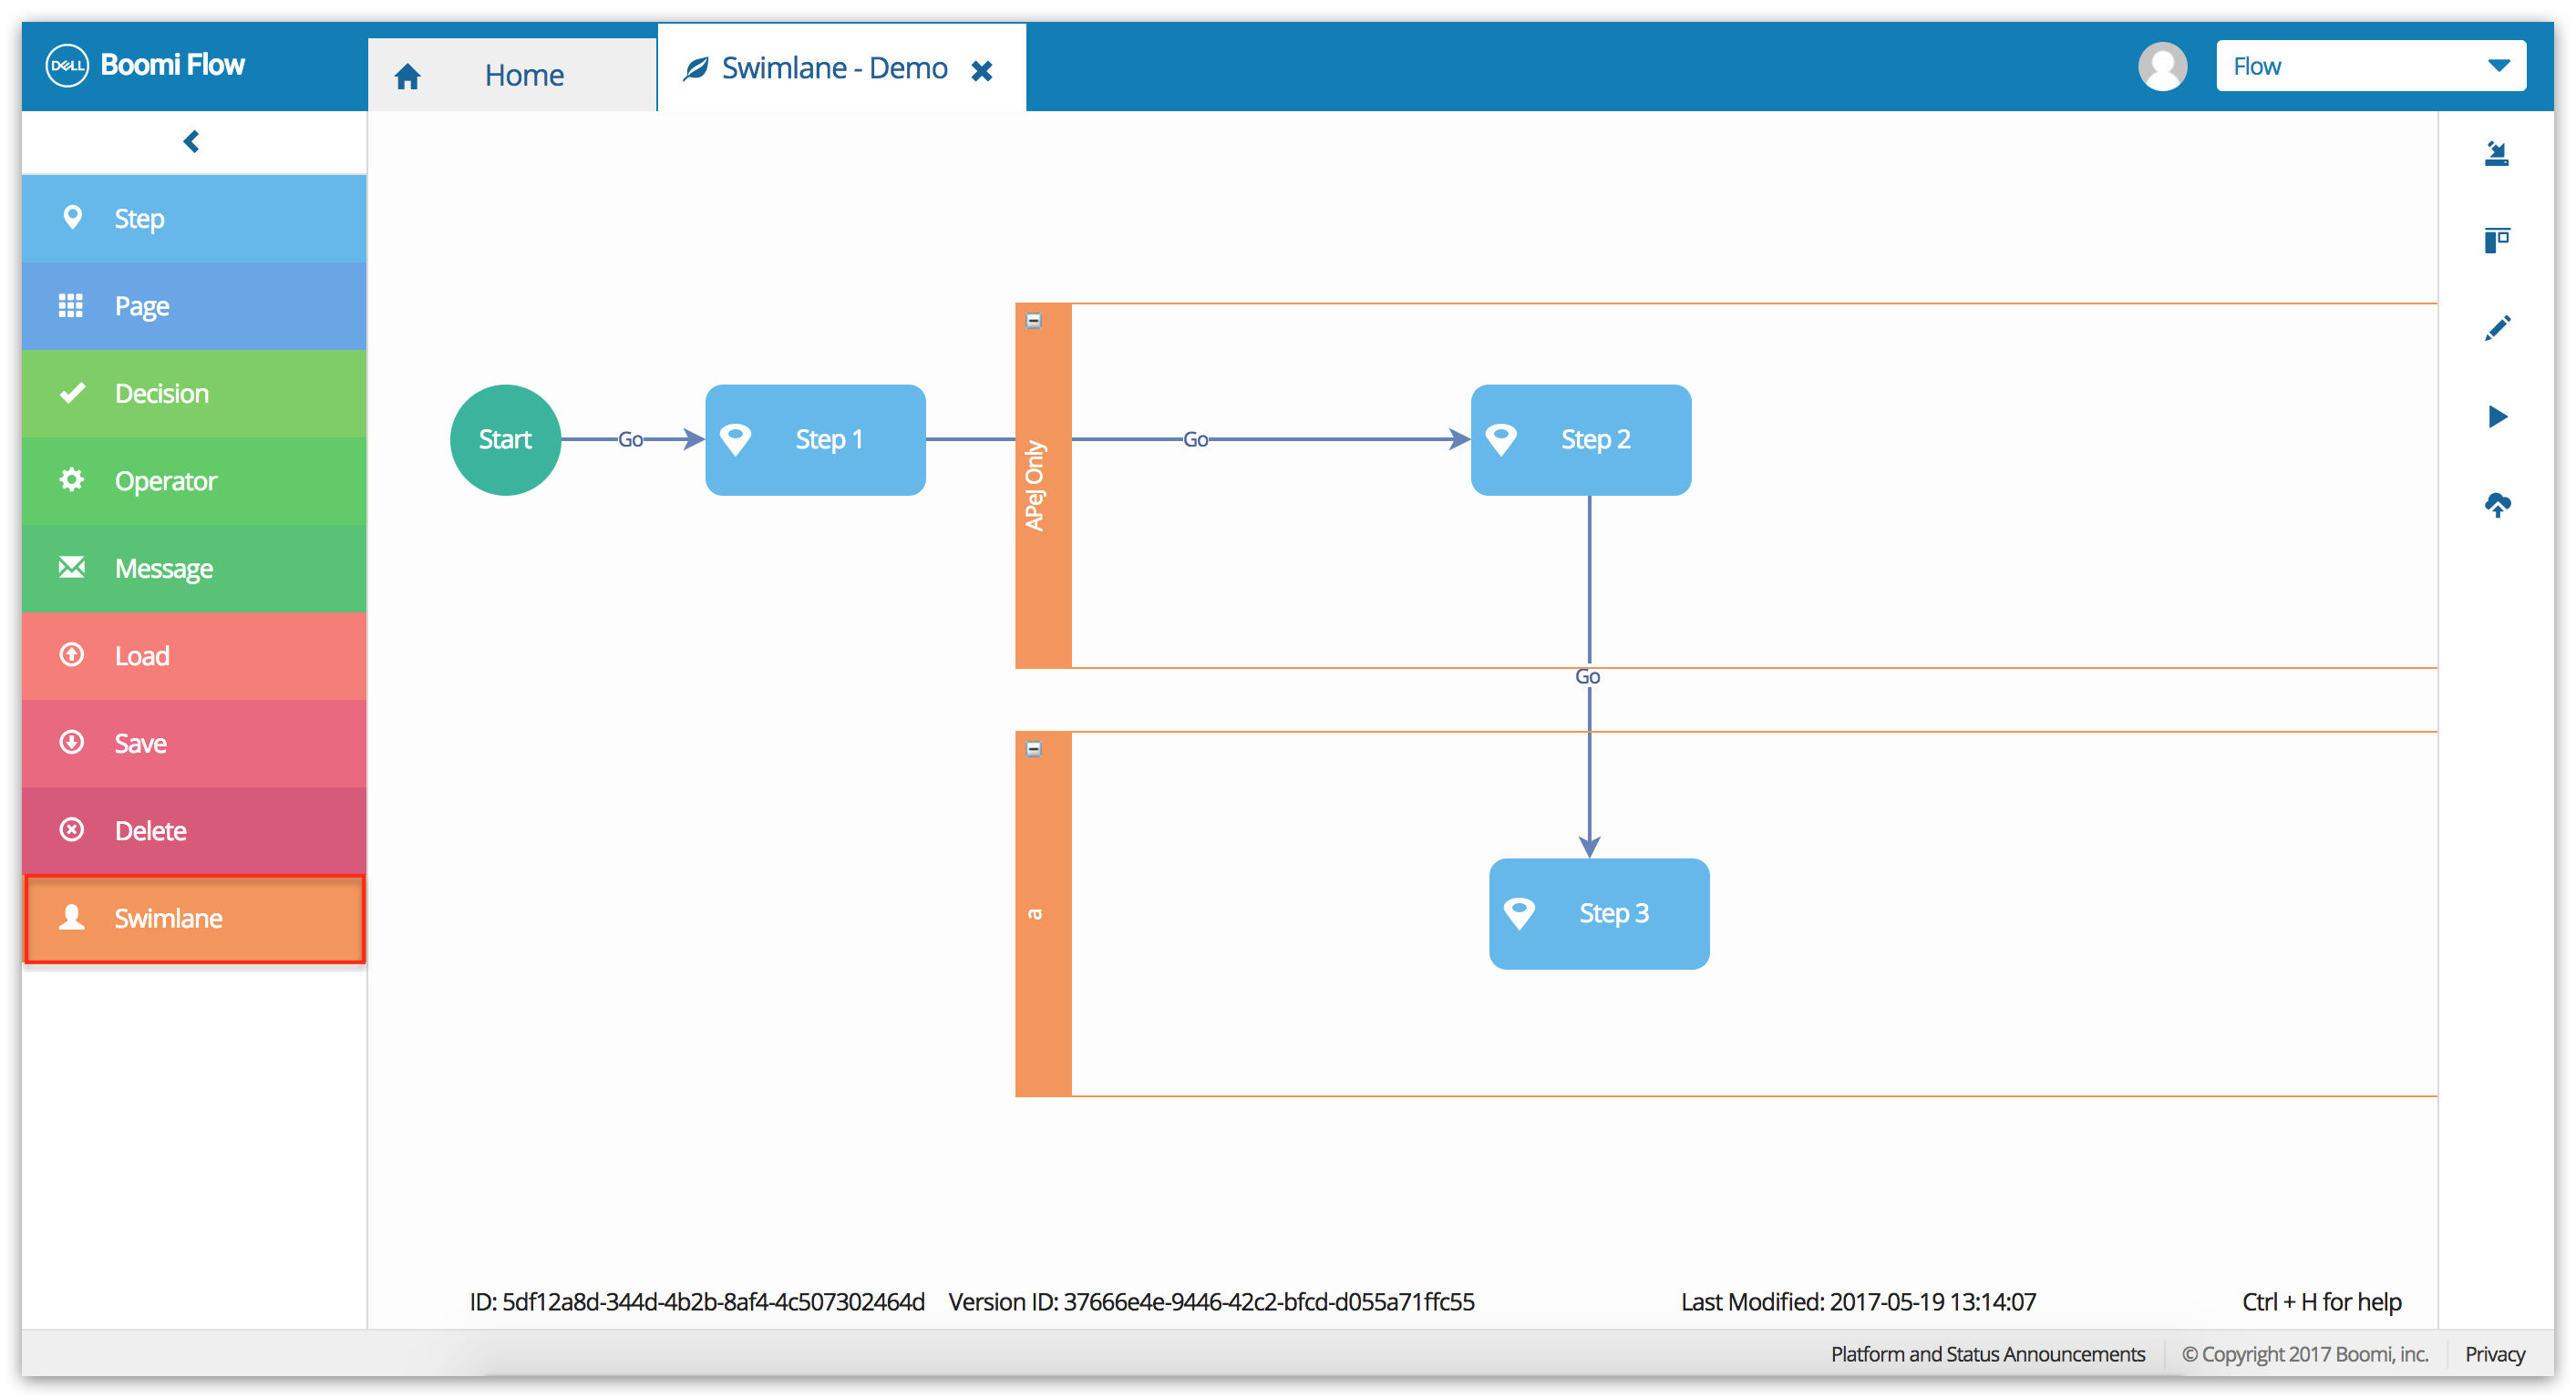 Flow Quick Concepts Boomi Documentation Help Service Process Diagram With Swimlanes To Use We Configure The Authorization Strategy For Swimlane And Drag Elements Inside It